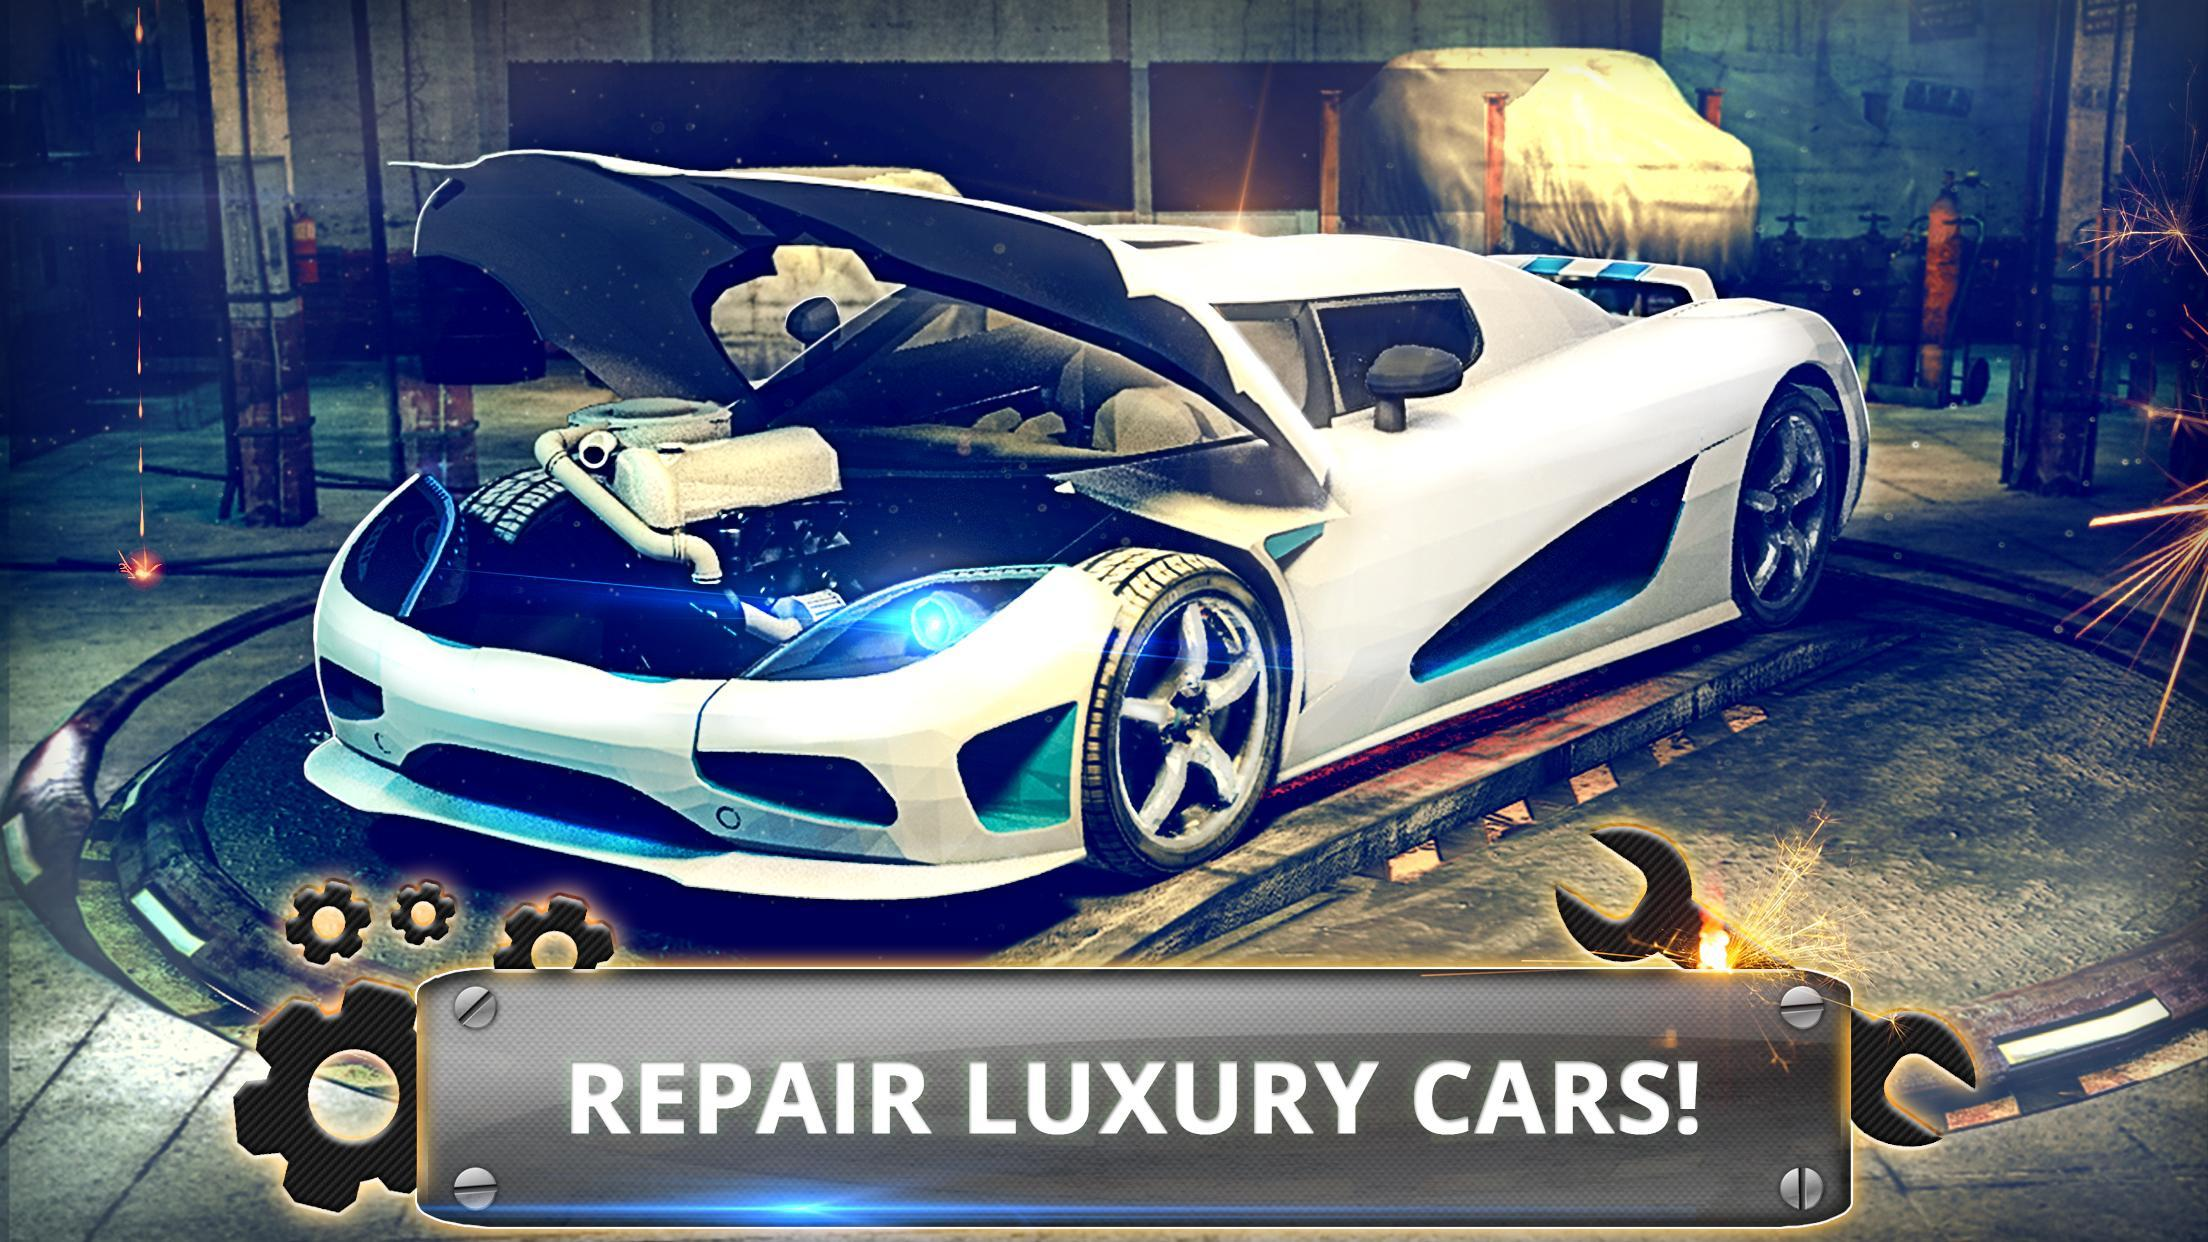 Super Car Mechanic: Fixing & Tuning Simulator 2018 for Android - APK